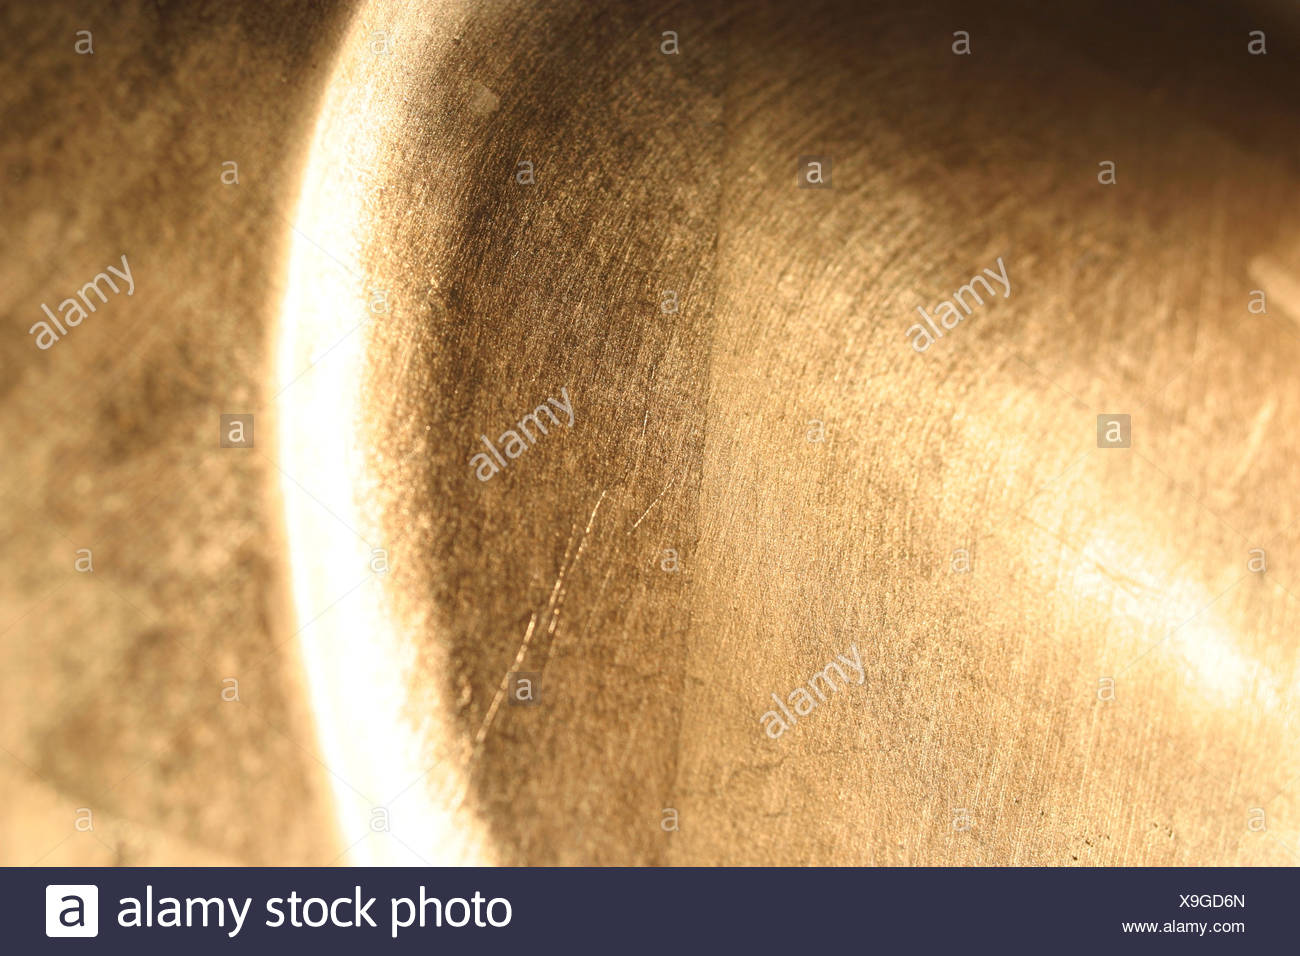 light 120 - Stock Image